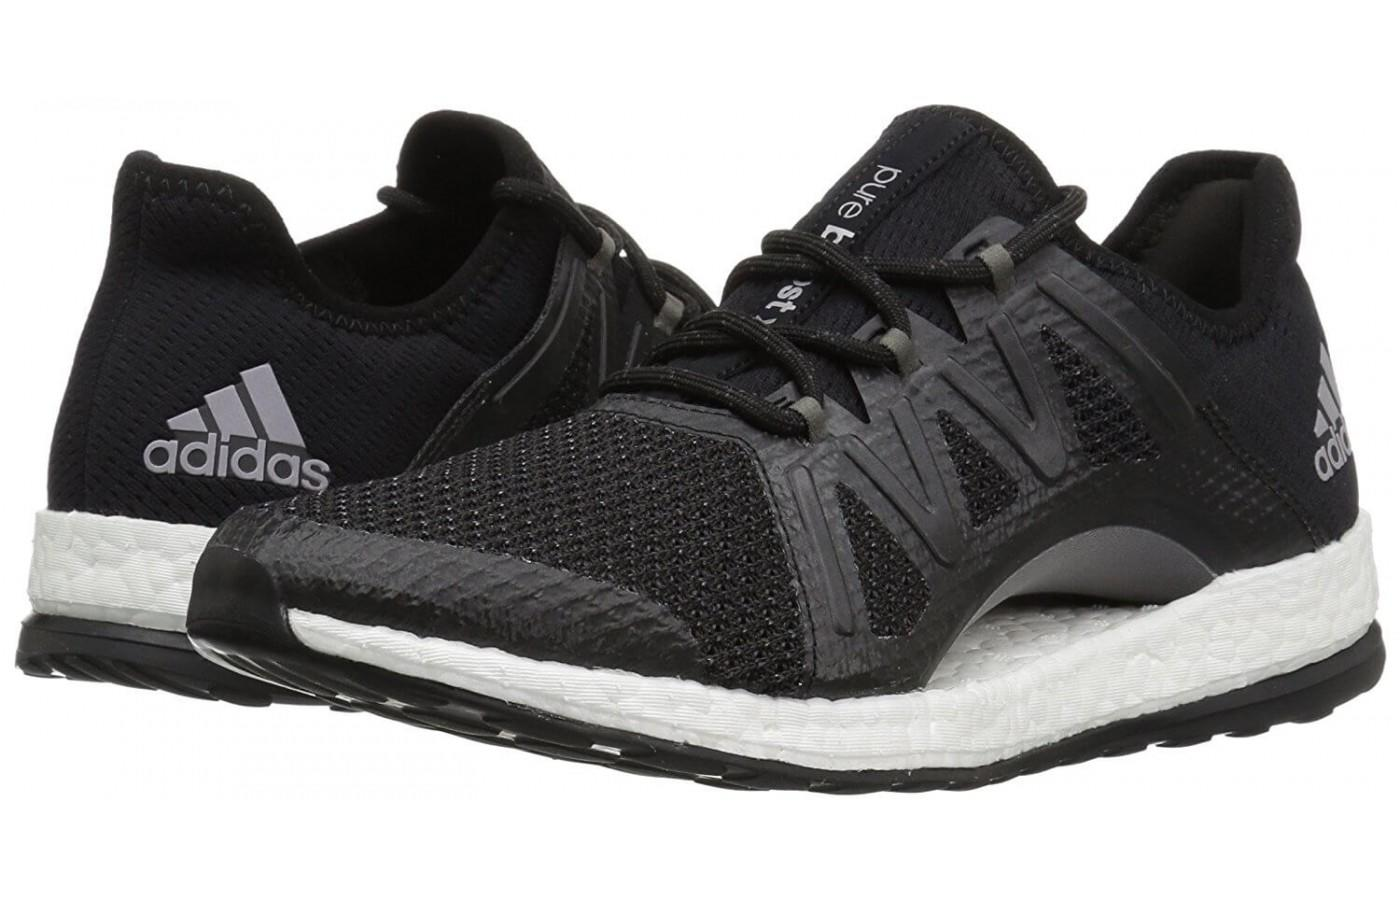 the adidas pureBOOST Xpose is a durable pair of sneakers that will last long after first step-in